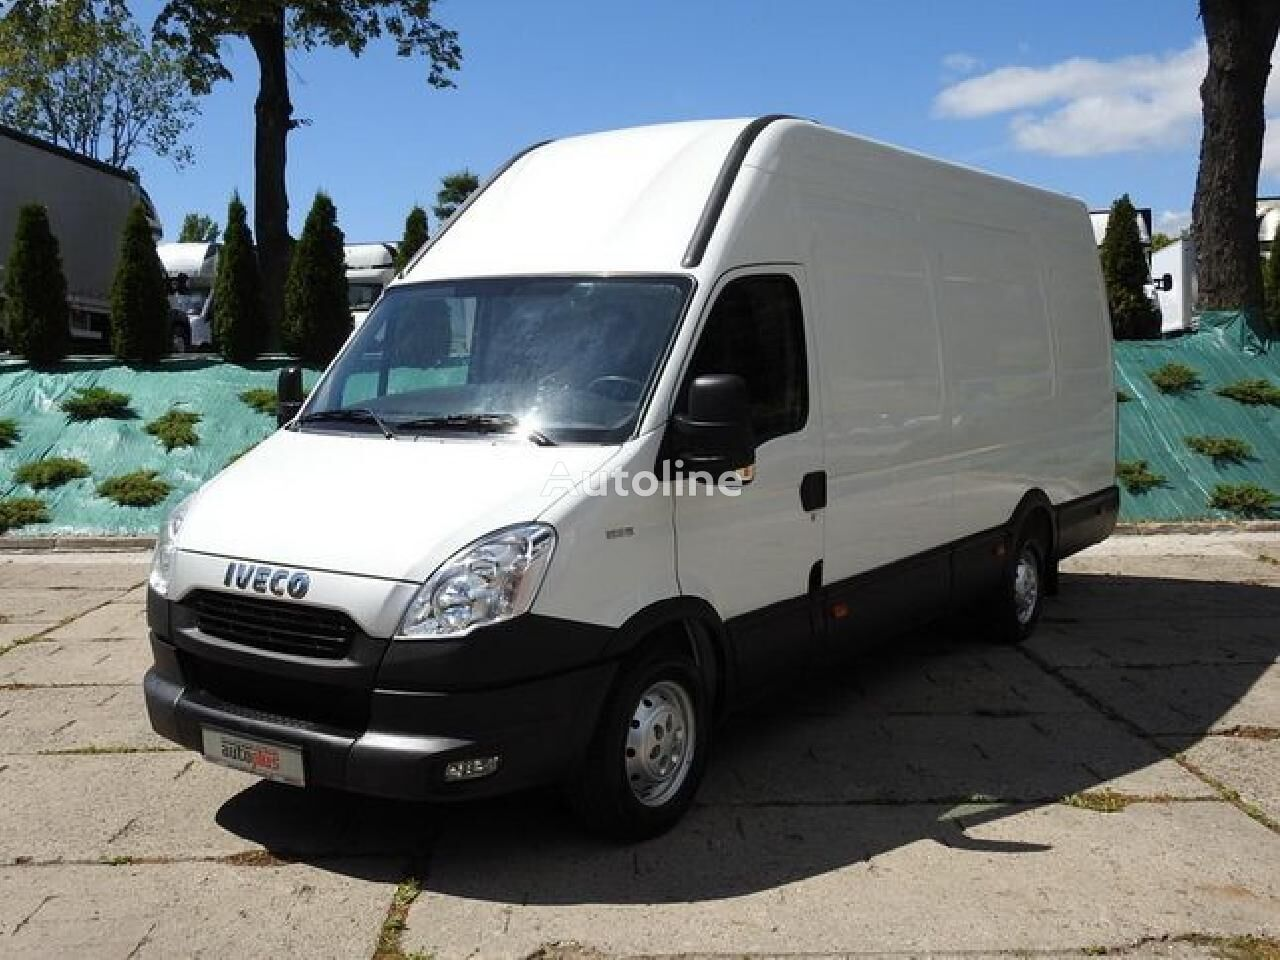 IVECO IVECO DAILY 35S13 FURGON WINDA DHOLLANDIA KLIMA TEMPOMAT [ 2527  closed box van